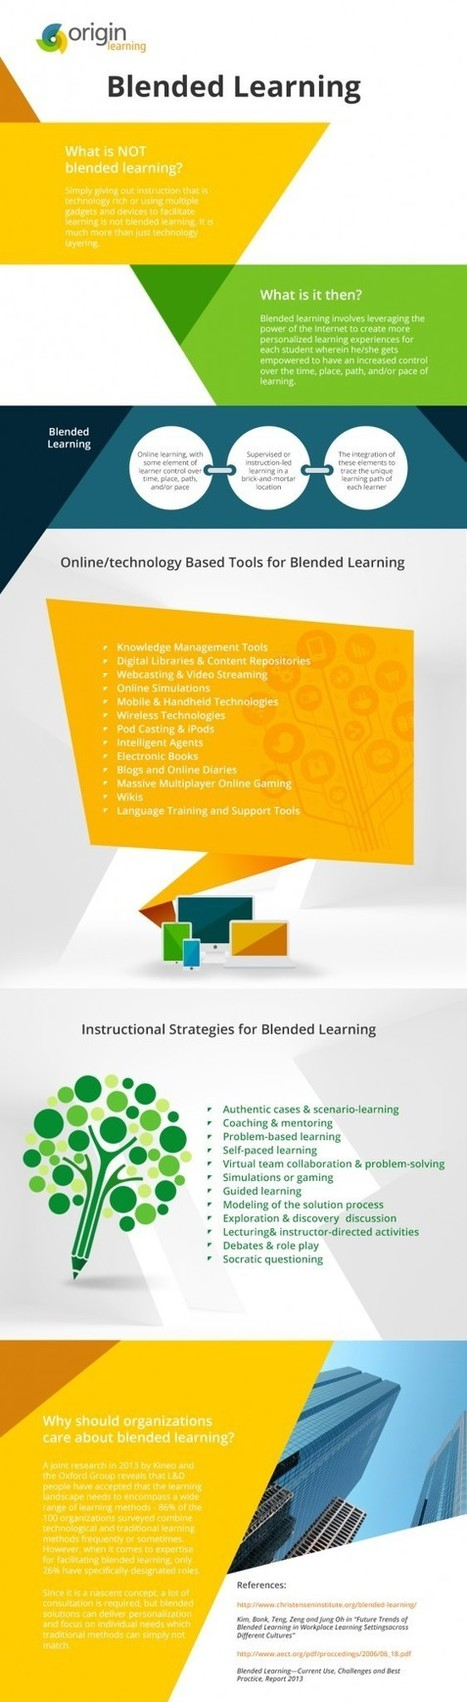 The Mystery of Blended Learning Infographic | 21st Century Literacy and Learning | Scoop.it